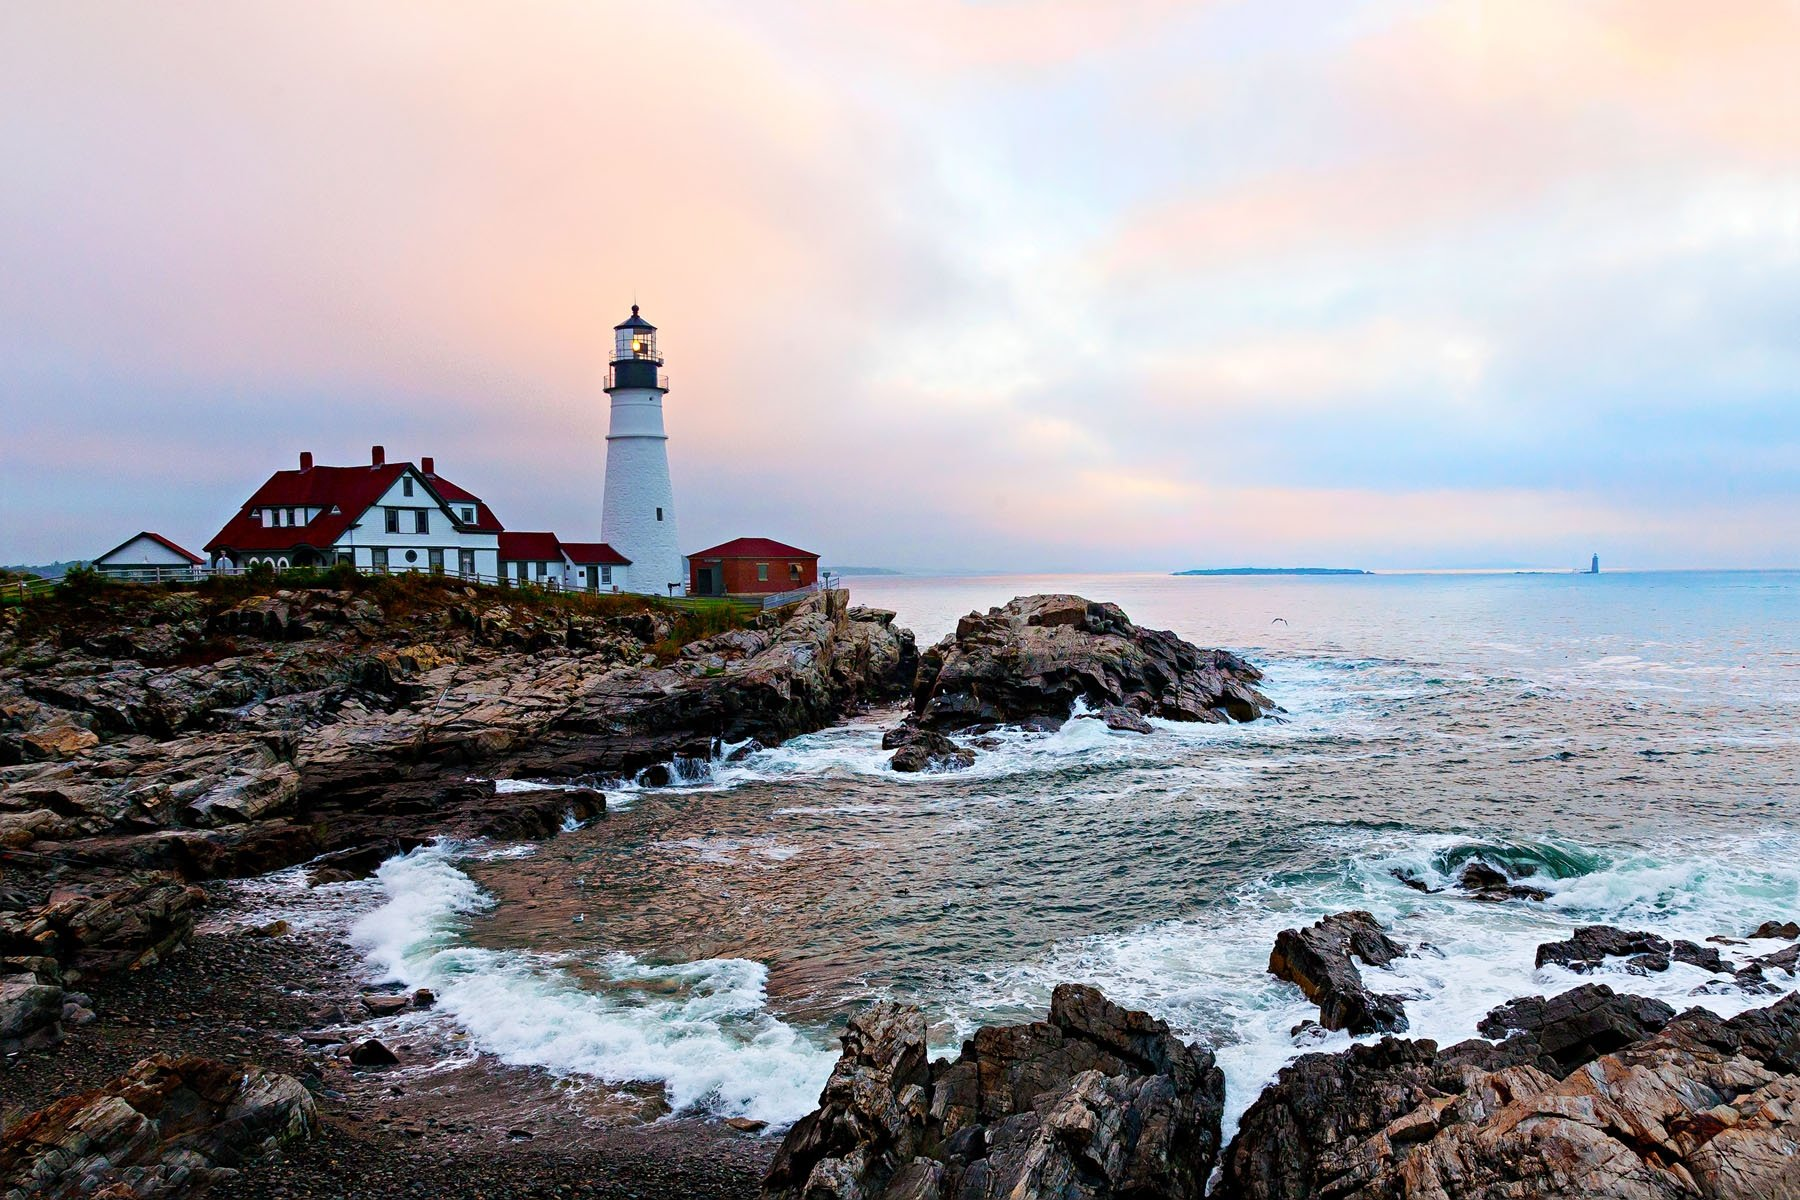 PORTLAND LIGHT - I know. Another light house picture. And I'm sure this light house in Portland Maine has been photographed more than any other lighthouse in the world. But, just look at it!       HOW CAN YOU NOT TAKE THIS PICTURE?